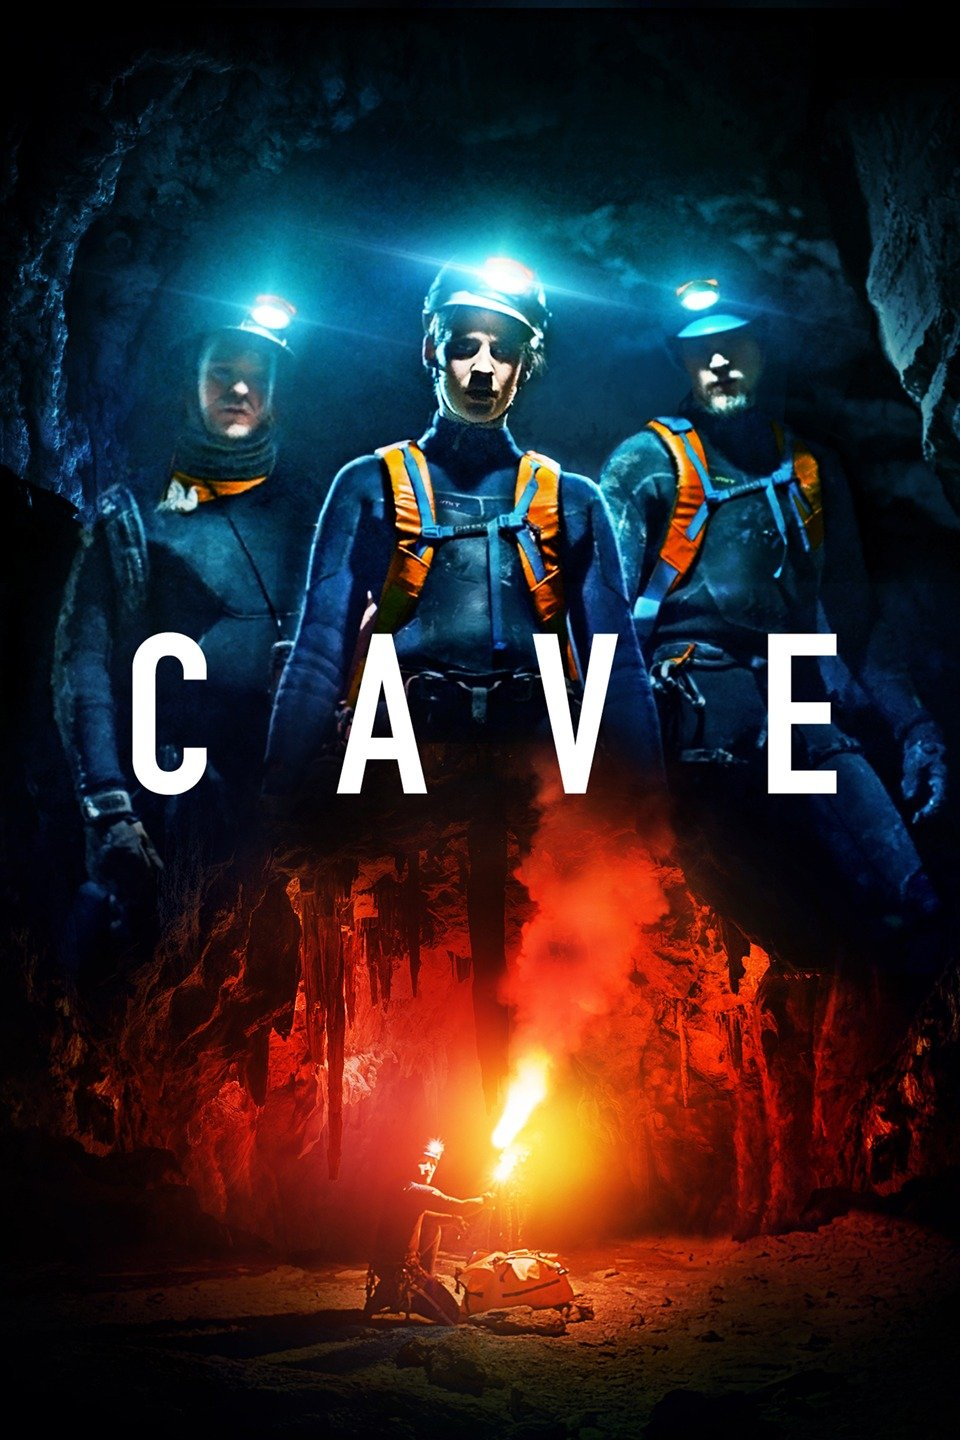 Cave-Cave